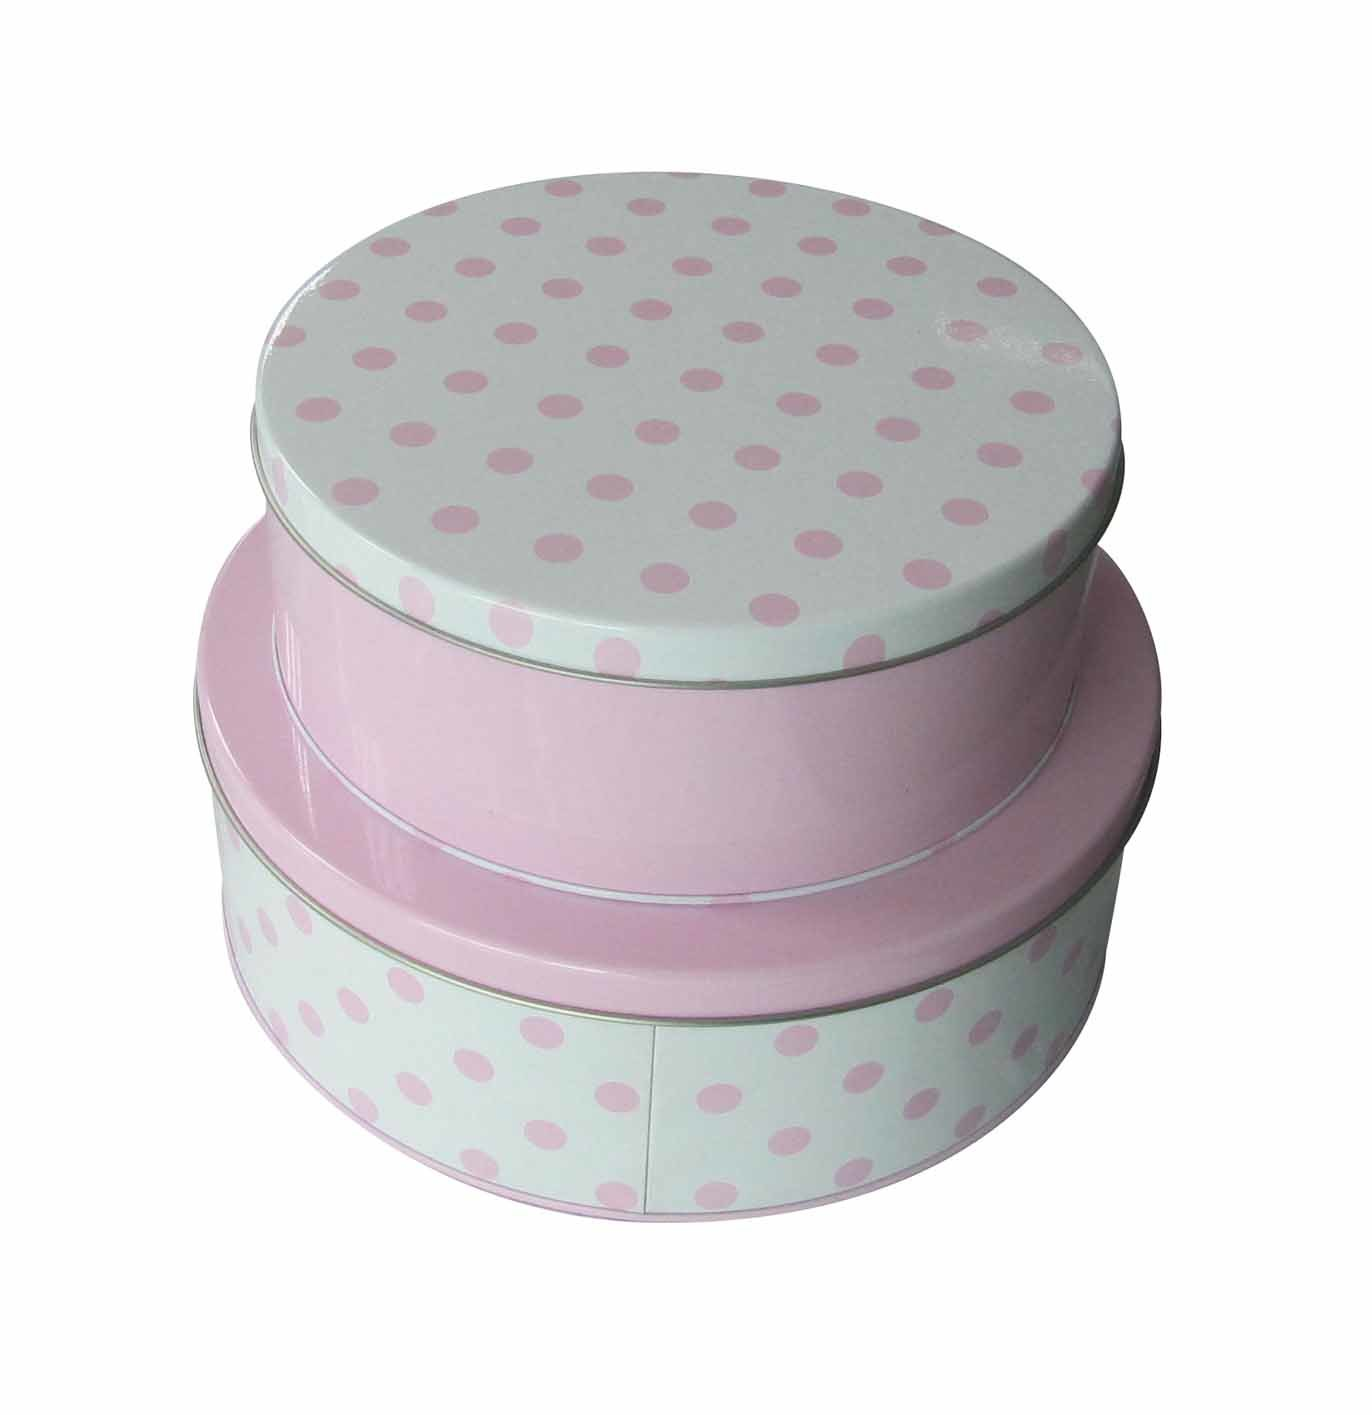 Cake Tin Suppliers